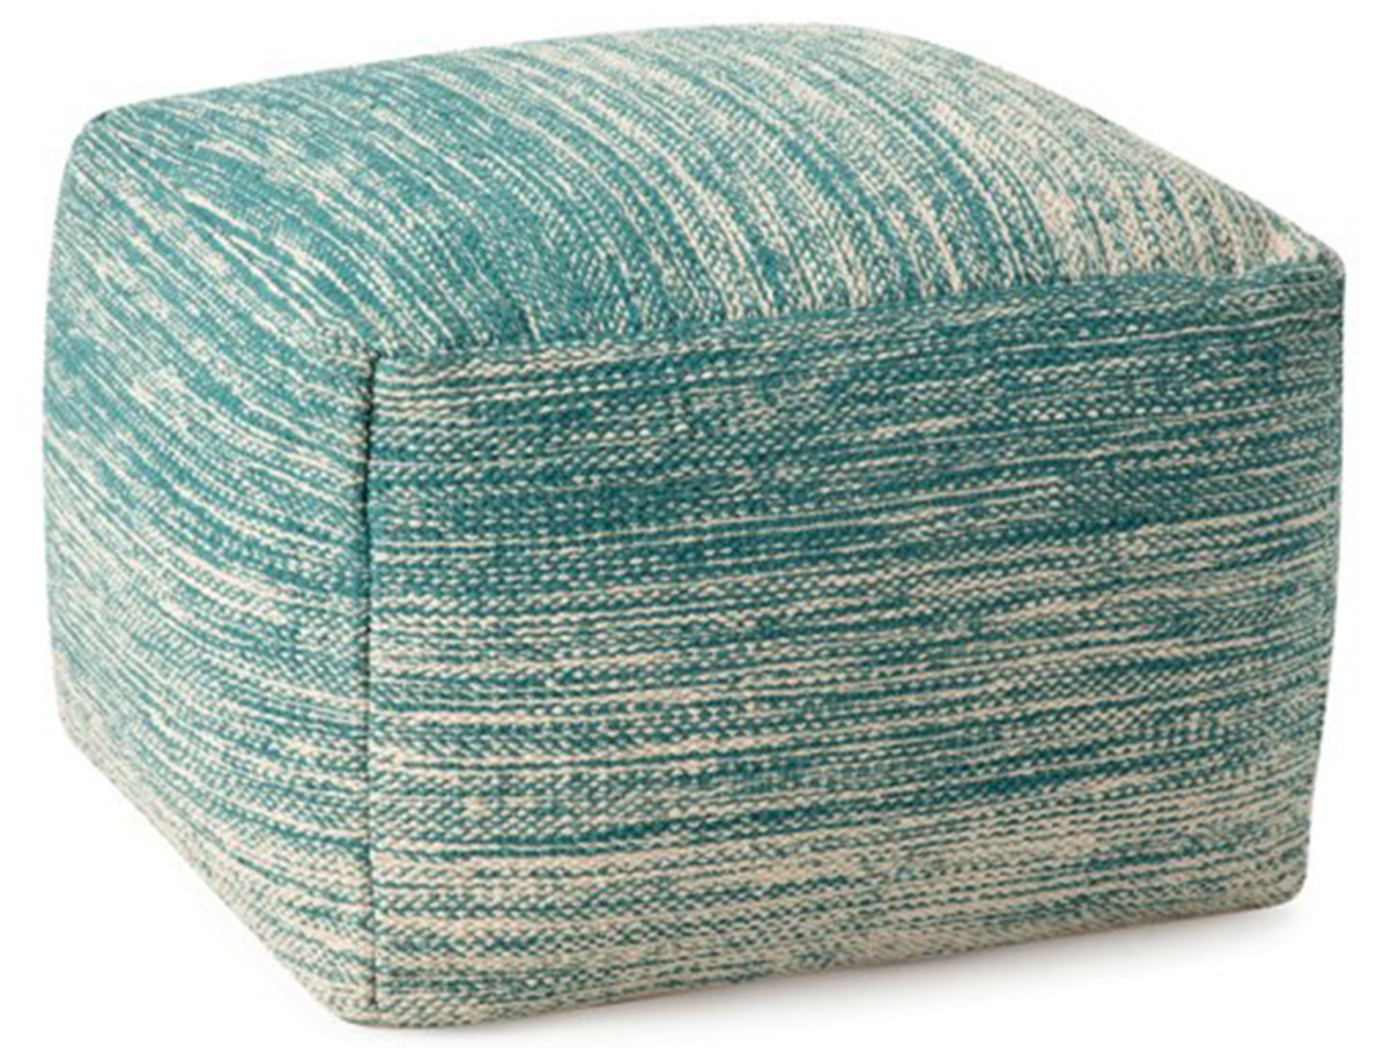 "Teal Handwoven Pouf 24""W x 18""H"